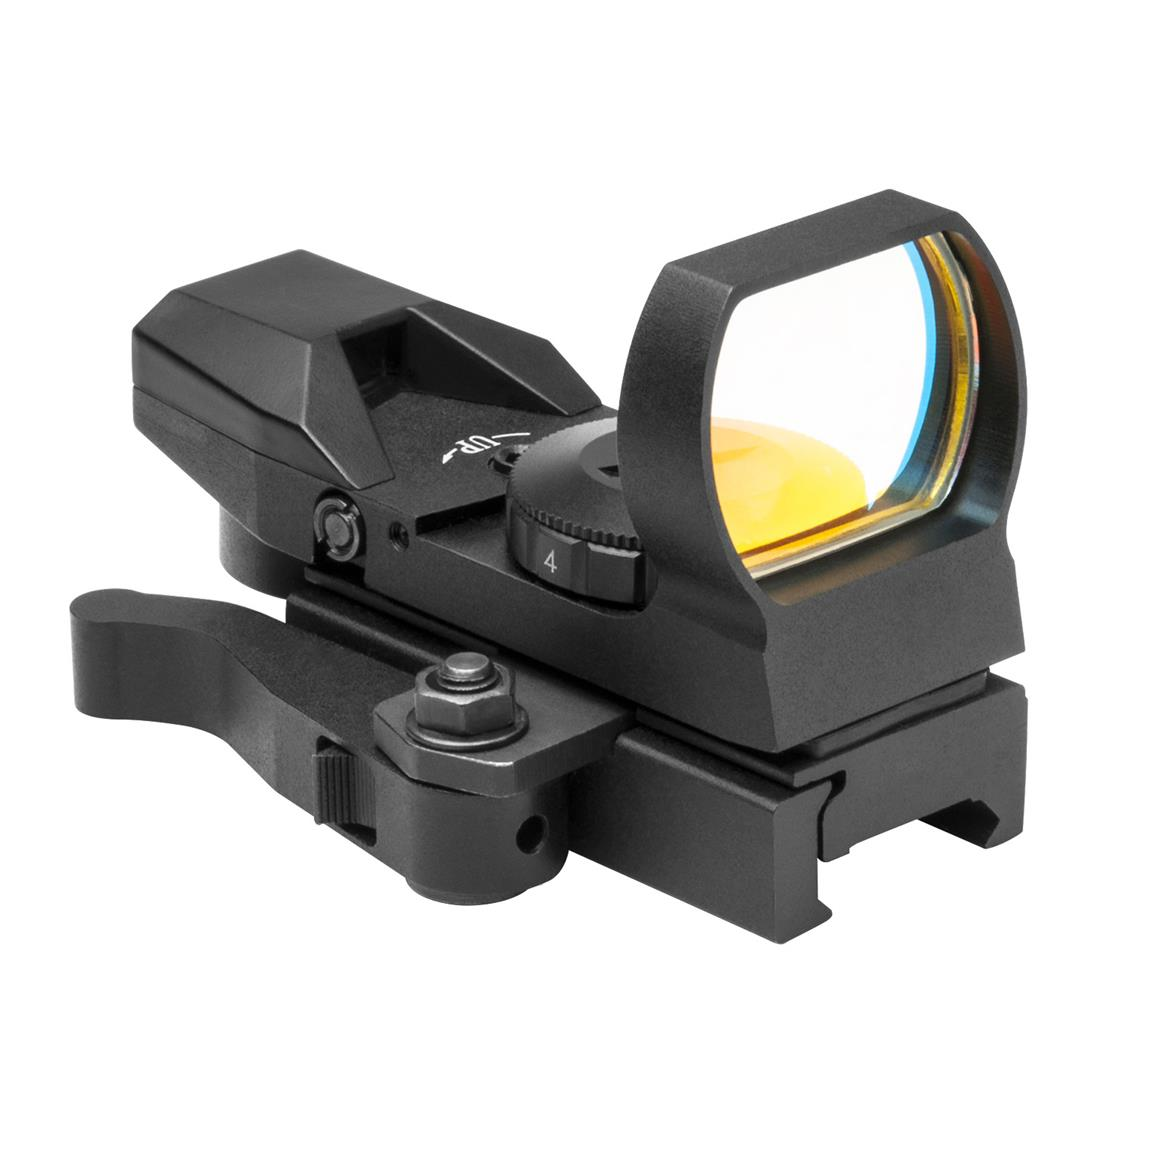 NcSTAR Rouge 4 Reticle Reflex Sight with Quick Release